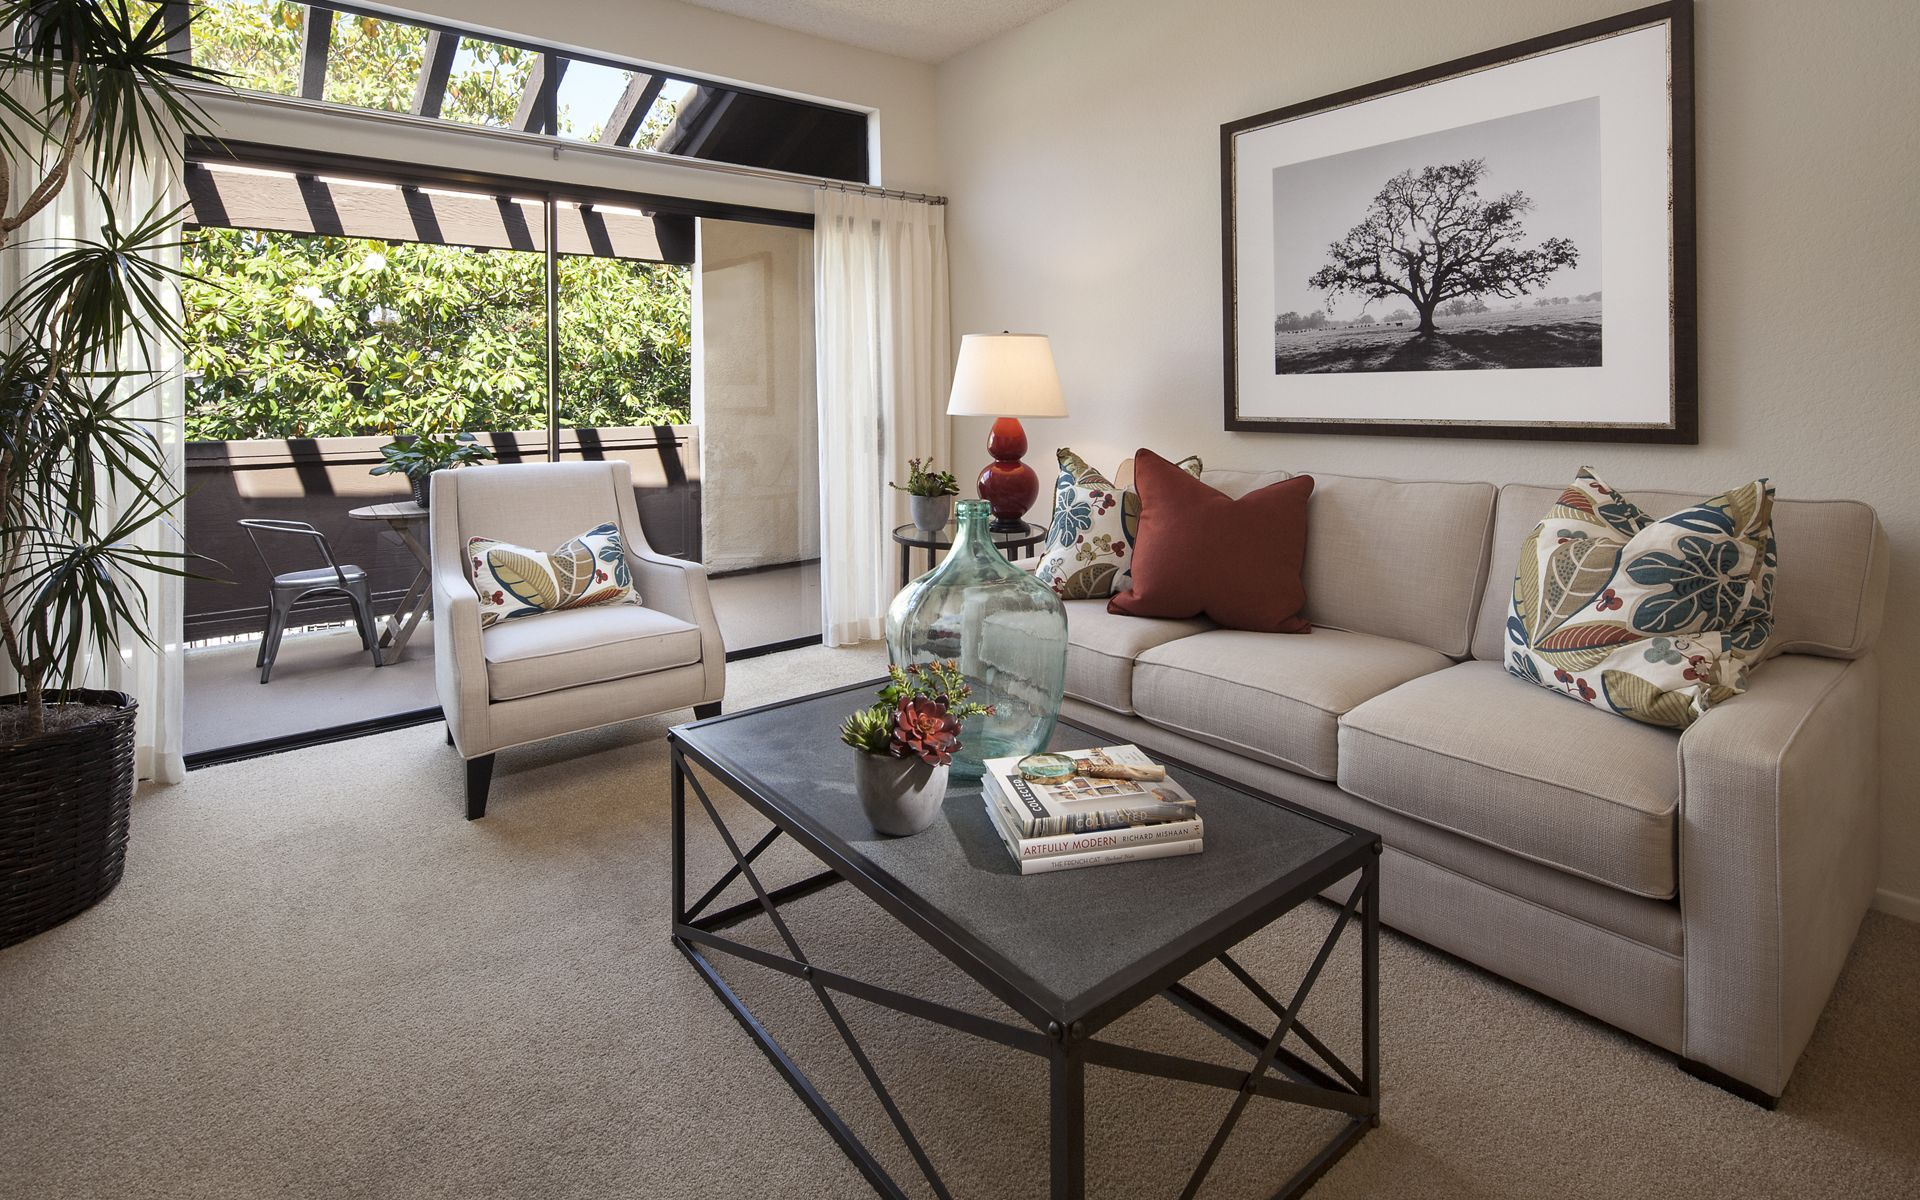 Interior view of living room at Rancho Alisal Apartment Homes in Tustin, CA.